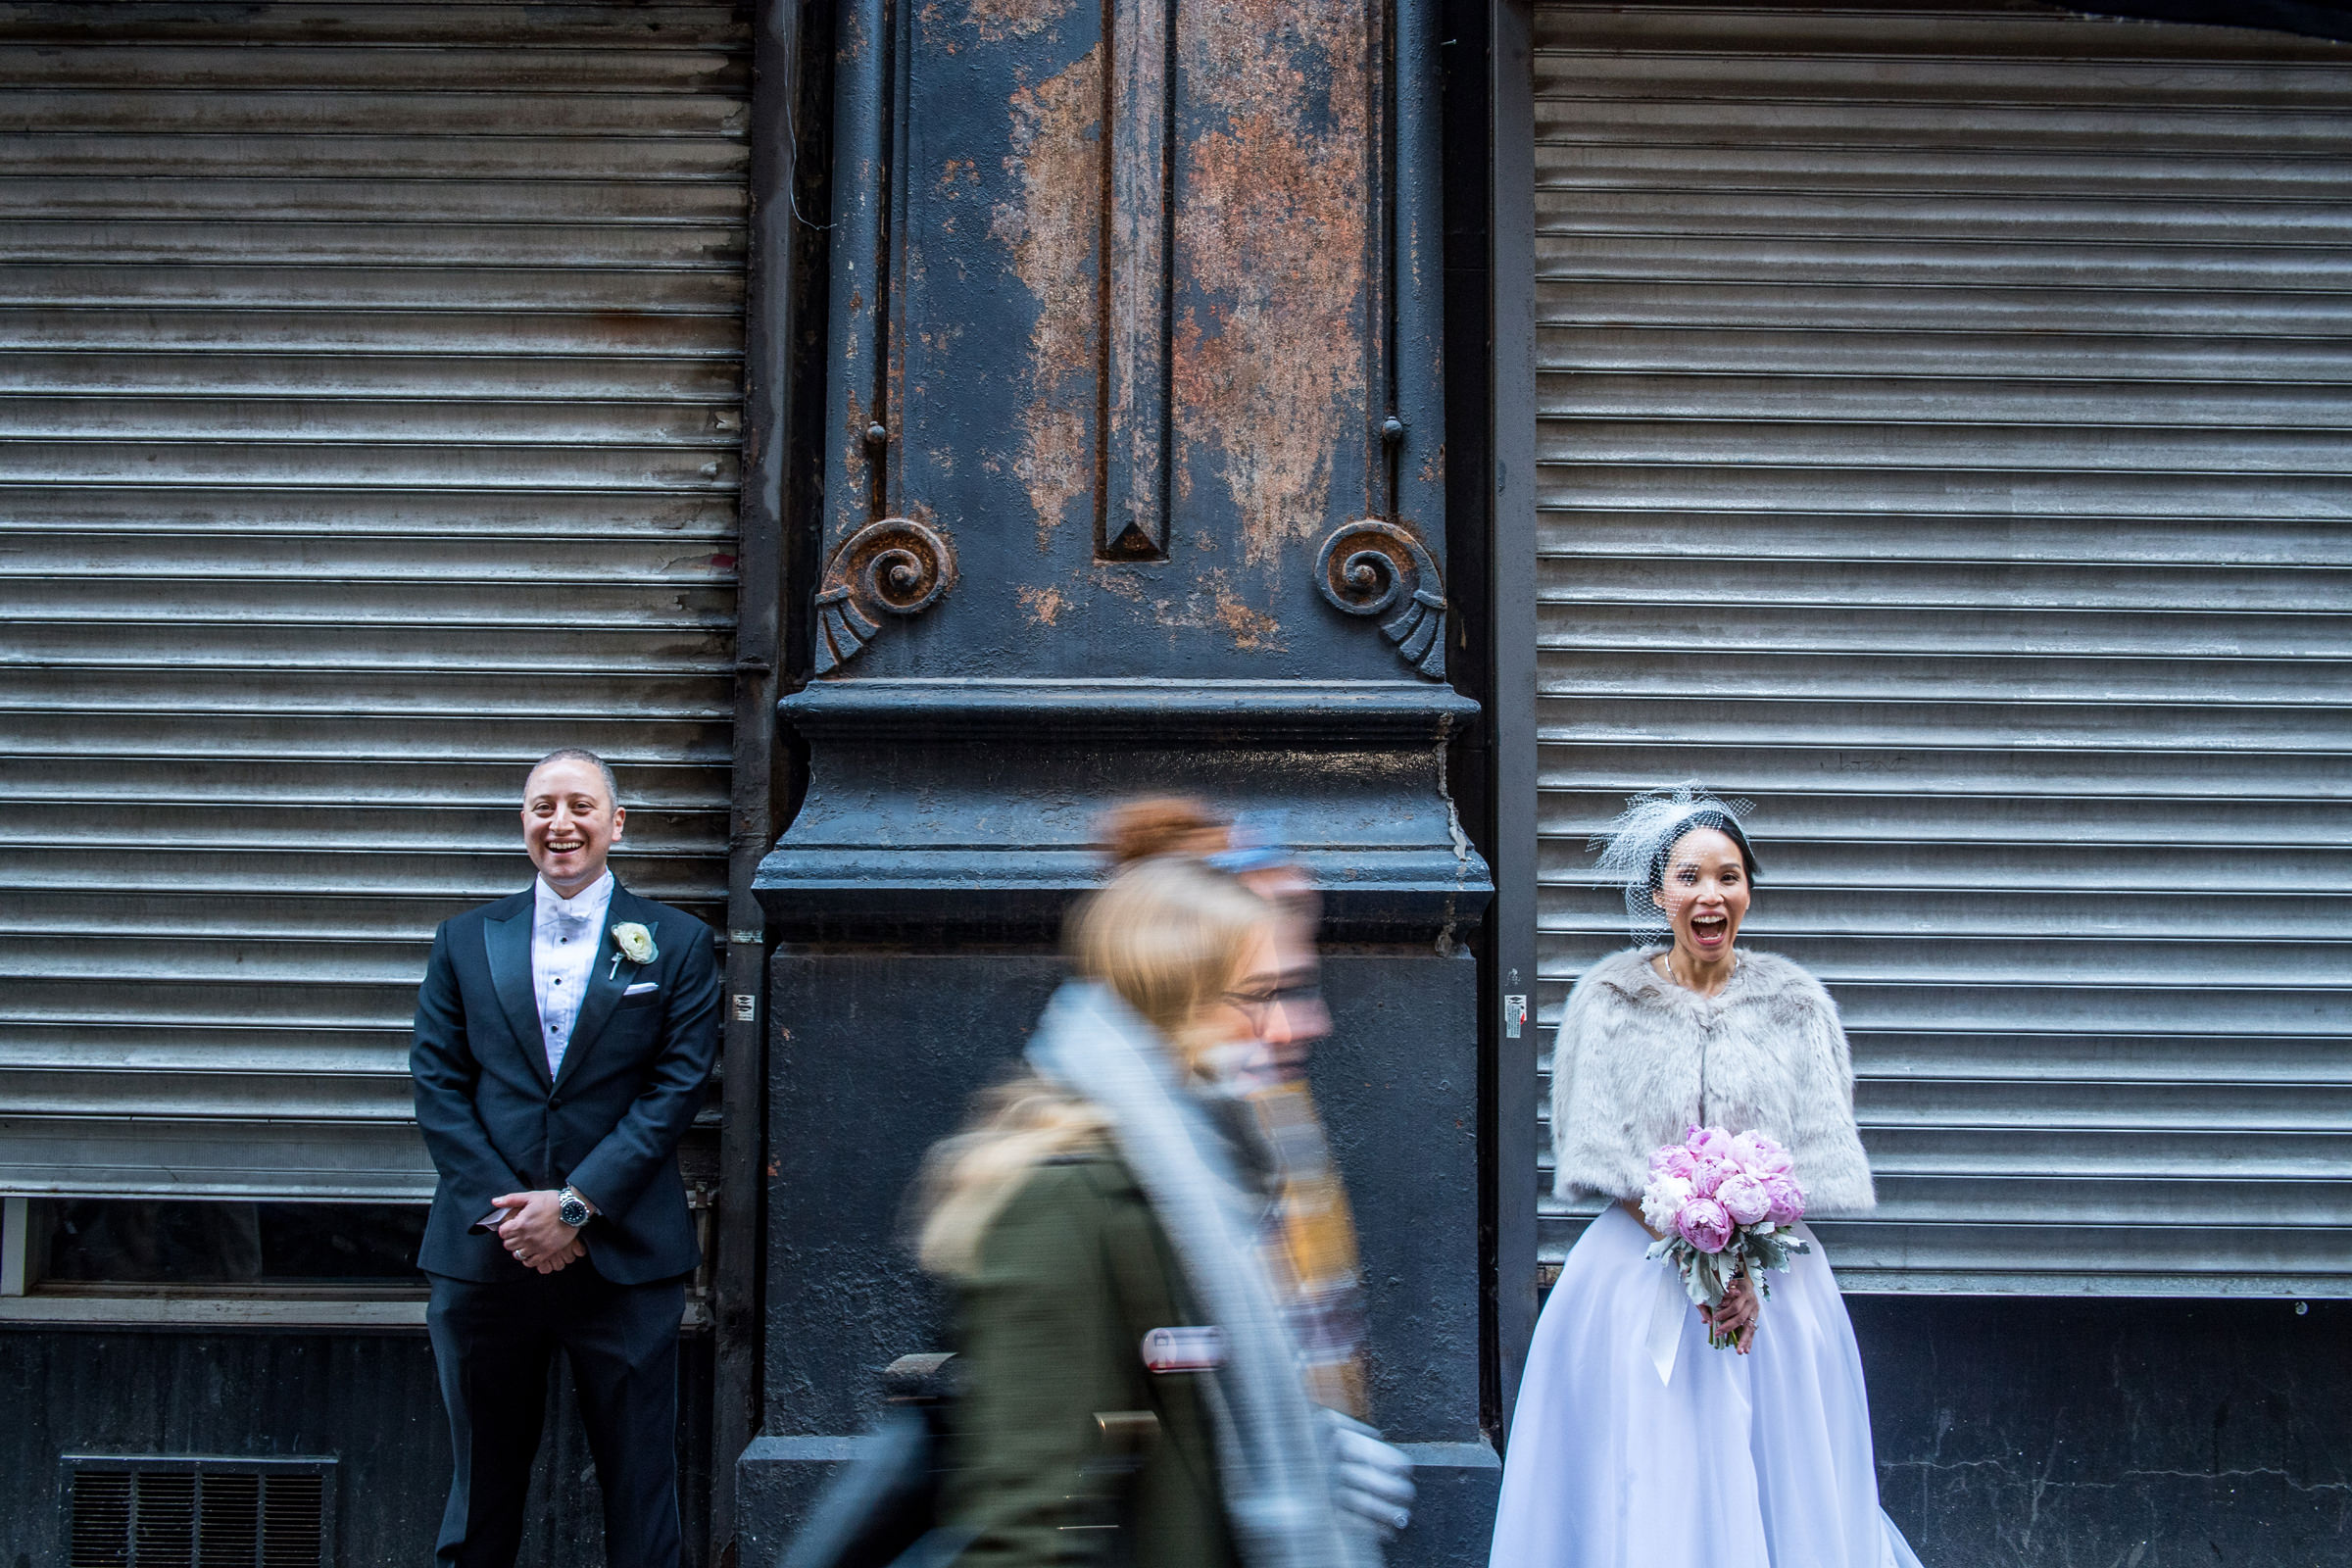 Bride and groom portrait with passerby - photo by Jeff Tisman Photography